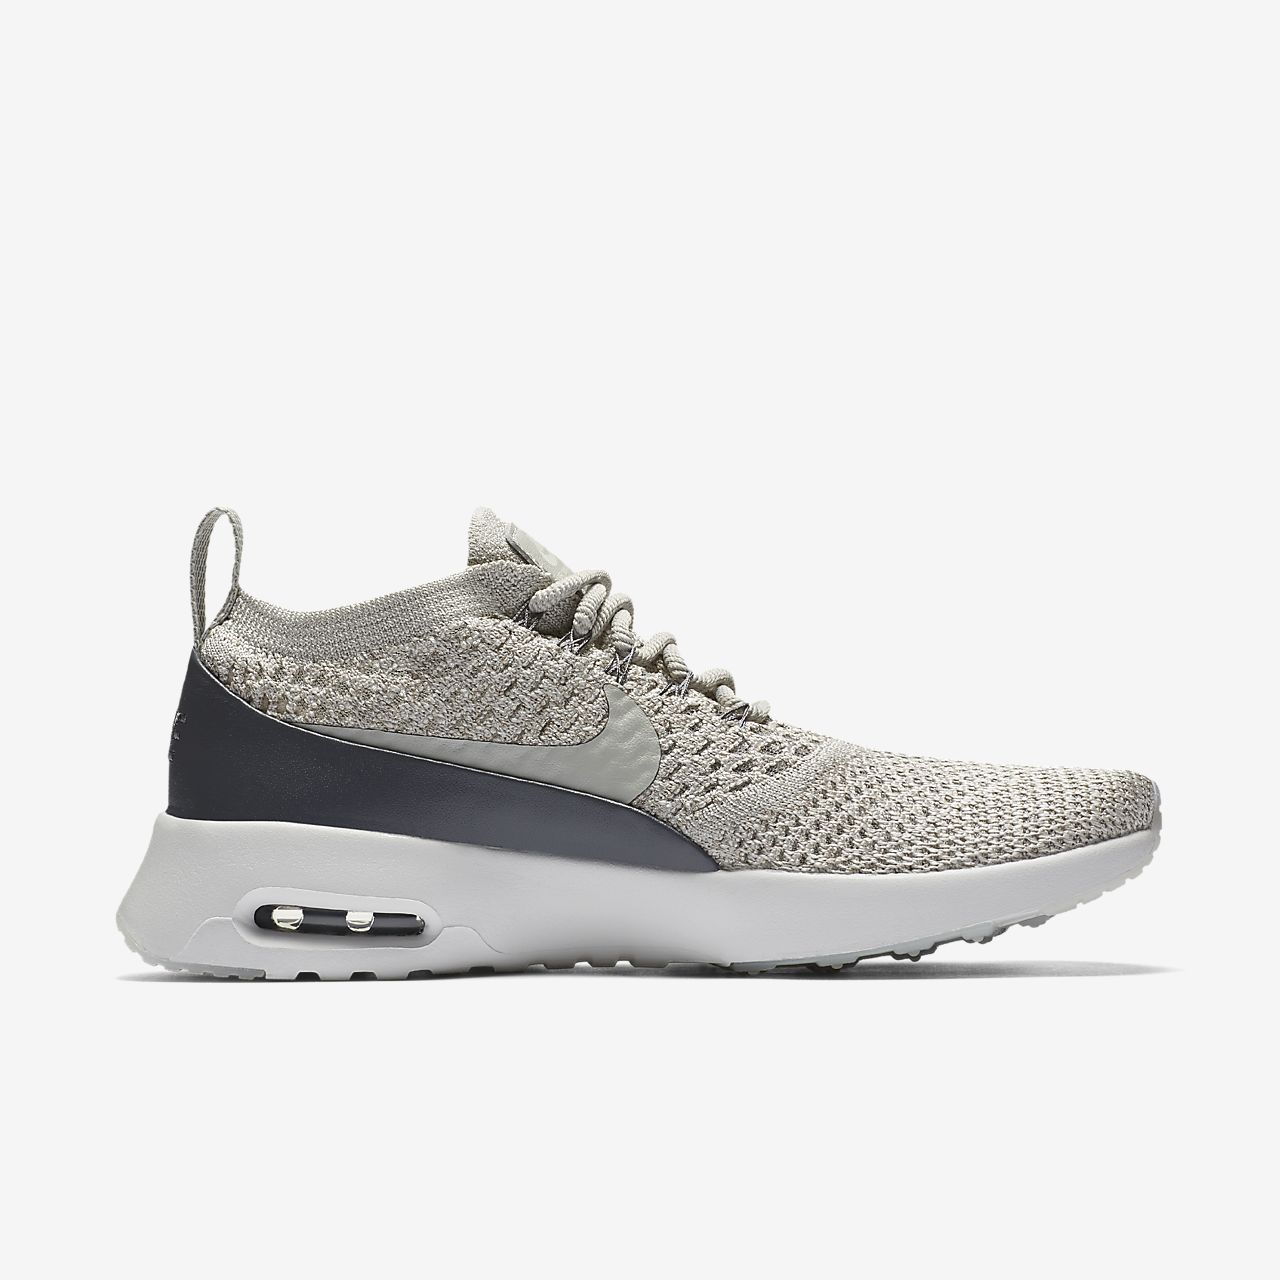 nike womens air max thea premium gid black reflective $60.99